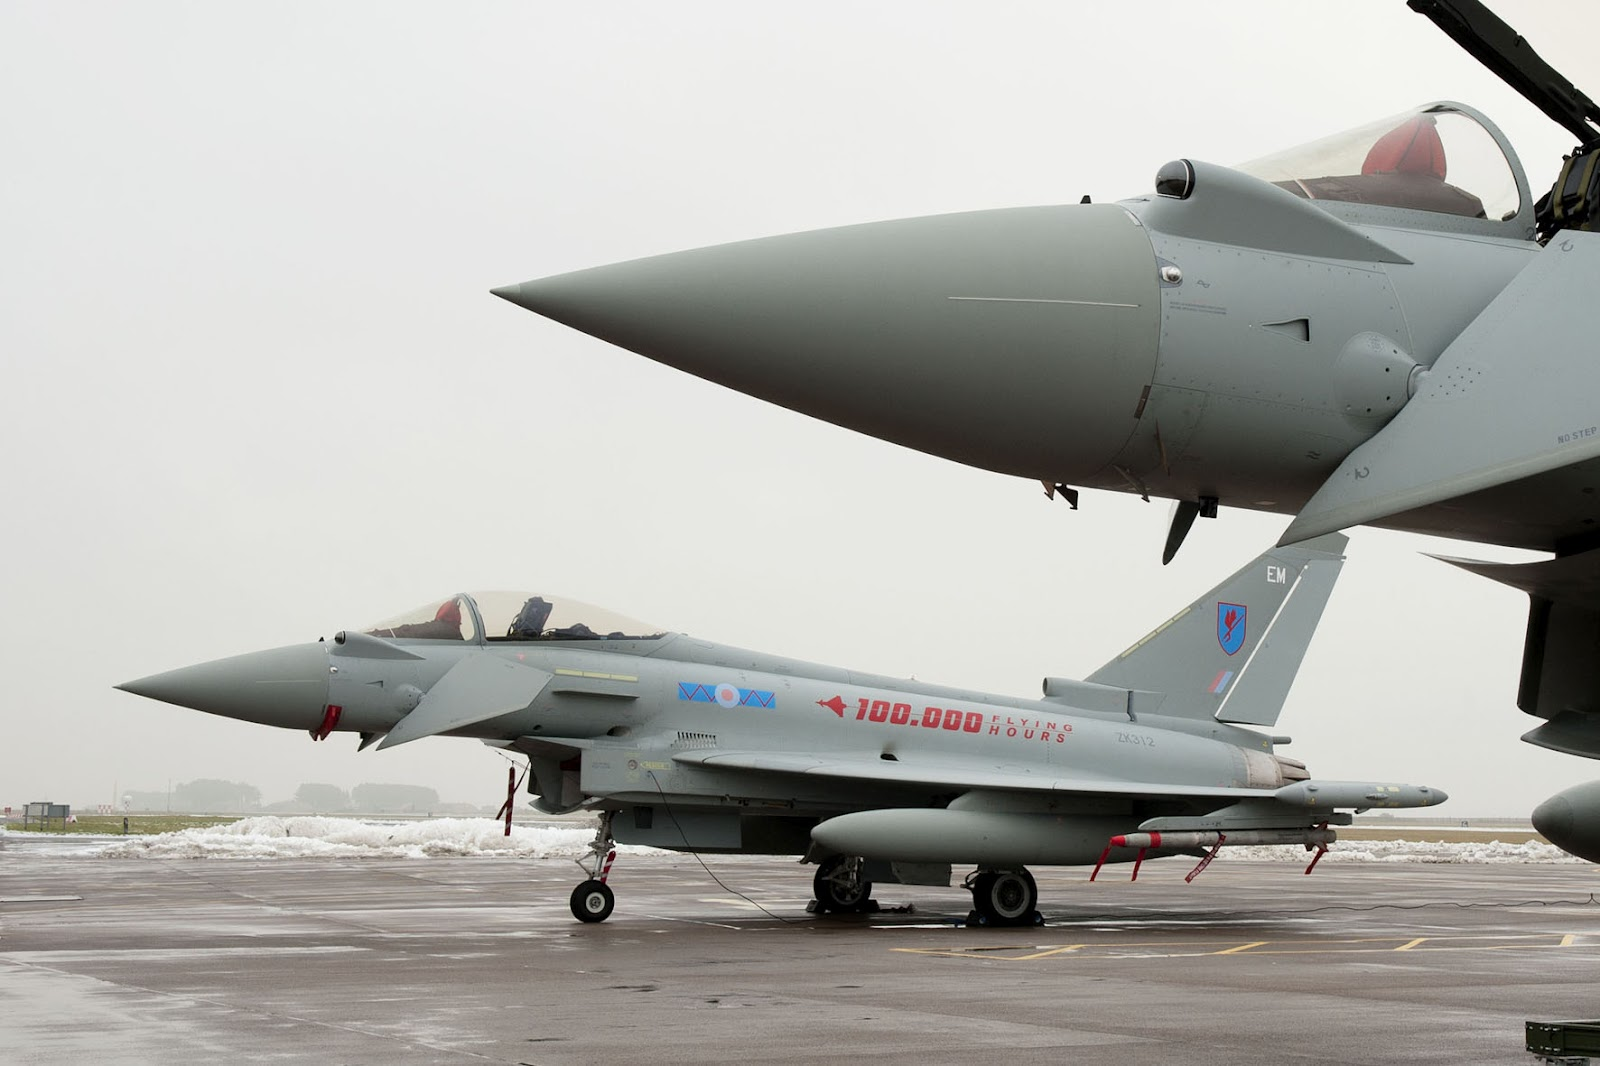 http://3.bp.blogspot.com/-caxHgKojd88/UBPxHiltjPI/AAAAAAAAKxY/LecngvK7fS8/s1600/eurofighter_typhoon_royal_air_force_static.jpg